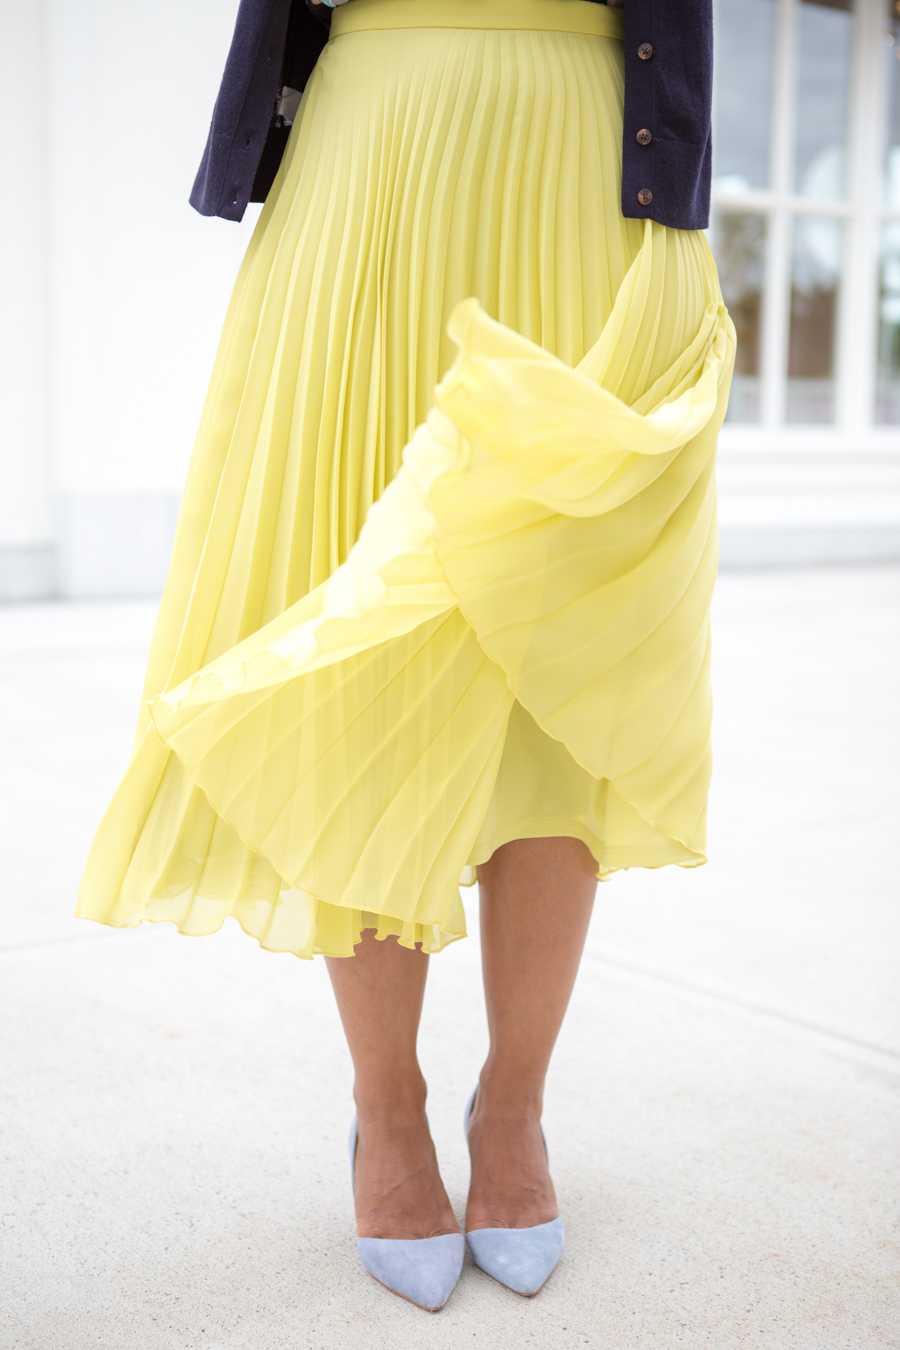 sole society, blue pumps, low heeled pumps, arch support, pleated skirt, lemon and lime, topshop, nordstrom, petite fashion, work style, work fashion, office style, corporate chic, professional wear, girlboss, dress for success